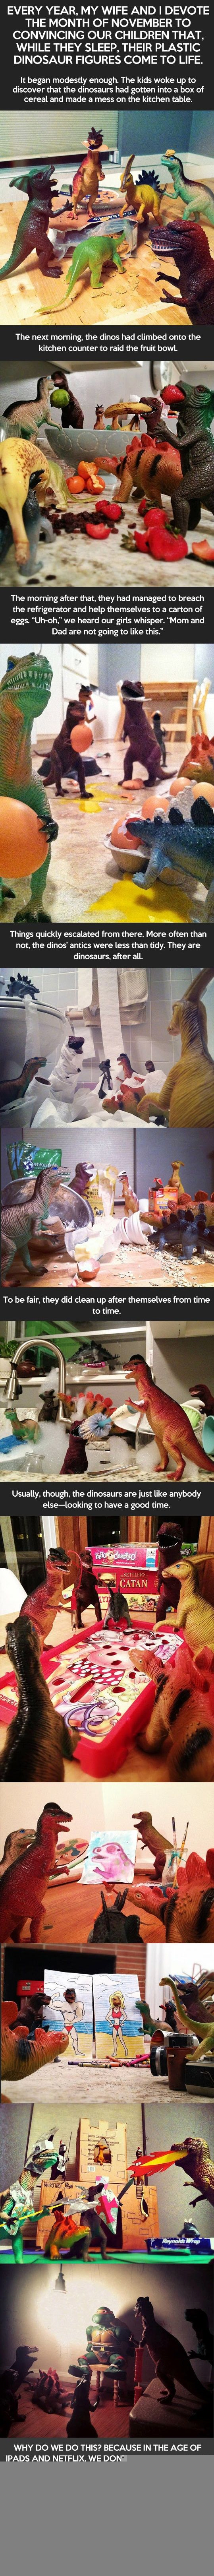 While Their Kids Sleep, These parents Pull Of This Amazing Stunt - dinos come to life